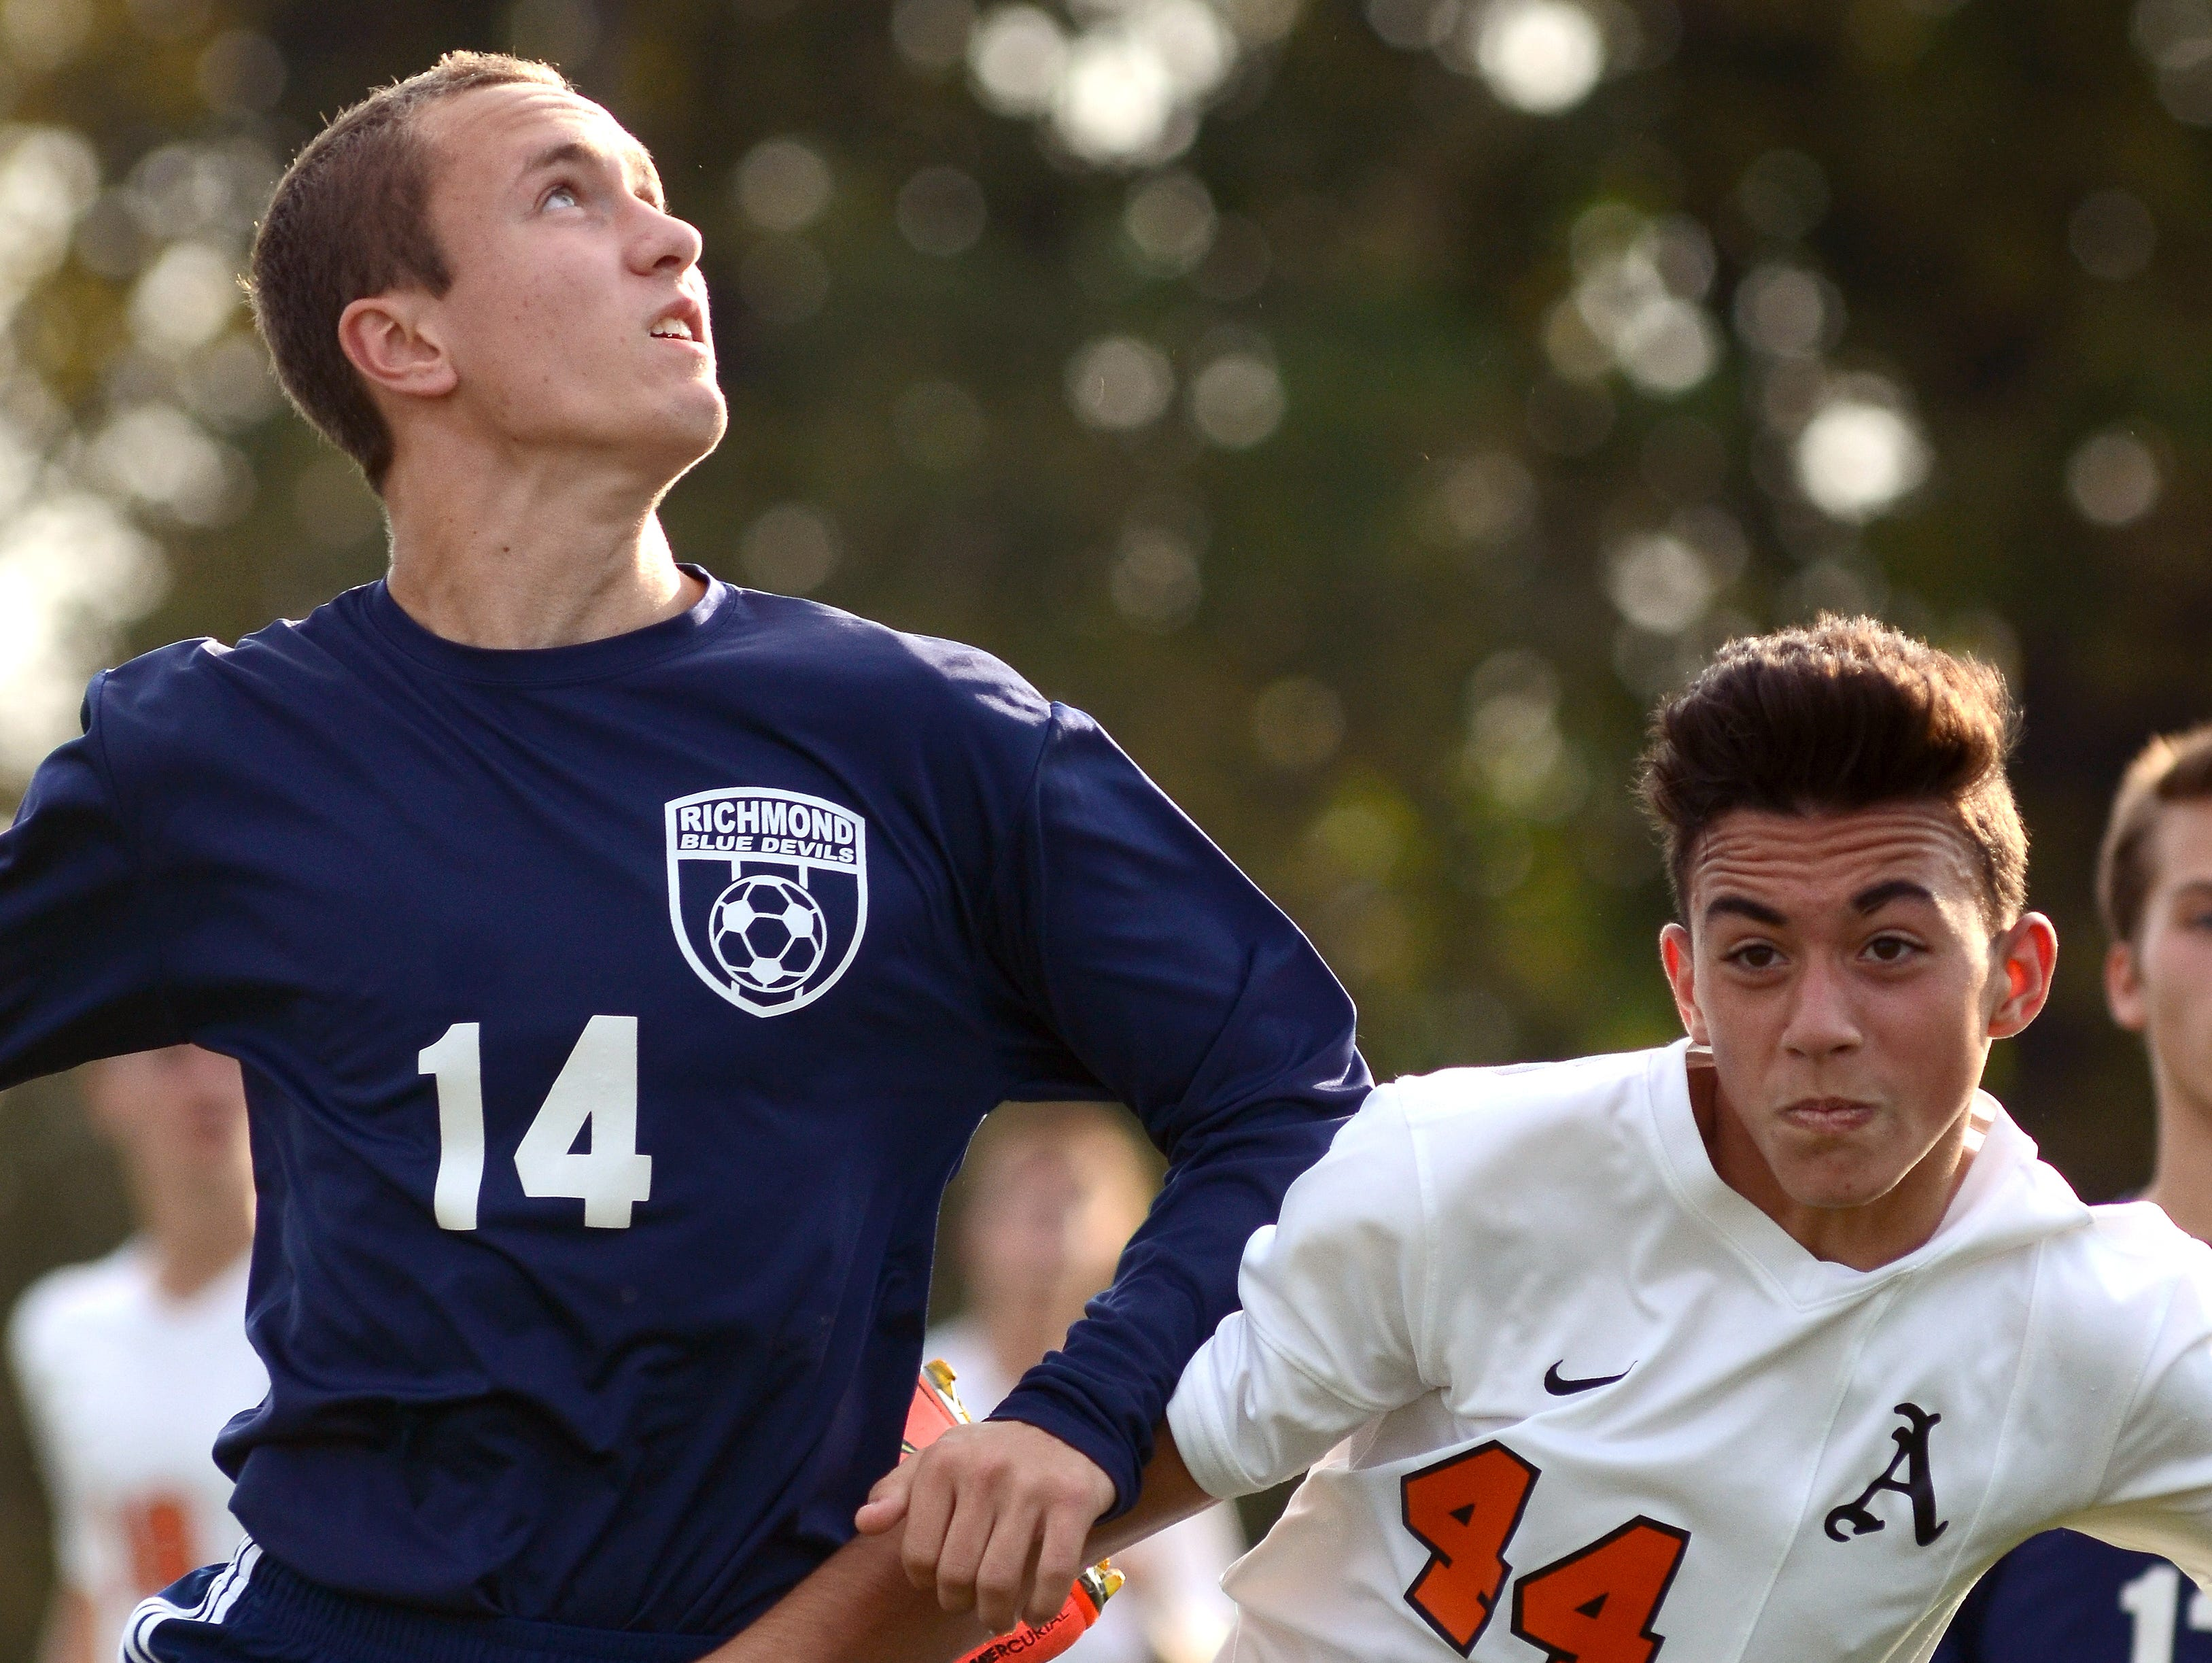 Blue Devils' Evan Quigley and Almonts' Nick Ferrante get tied up as they battle for the ball Monday, Oct. 12 during high school soccer action at Almont.